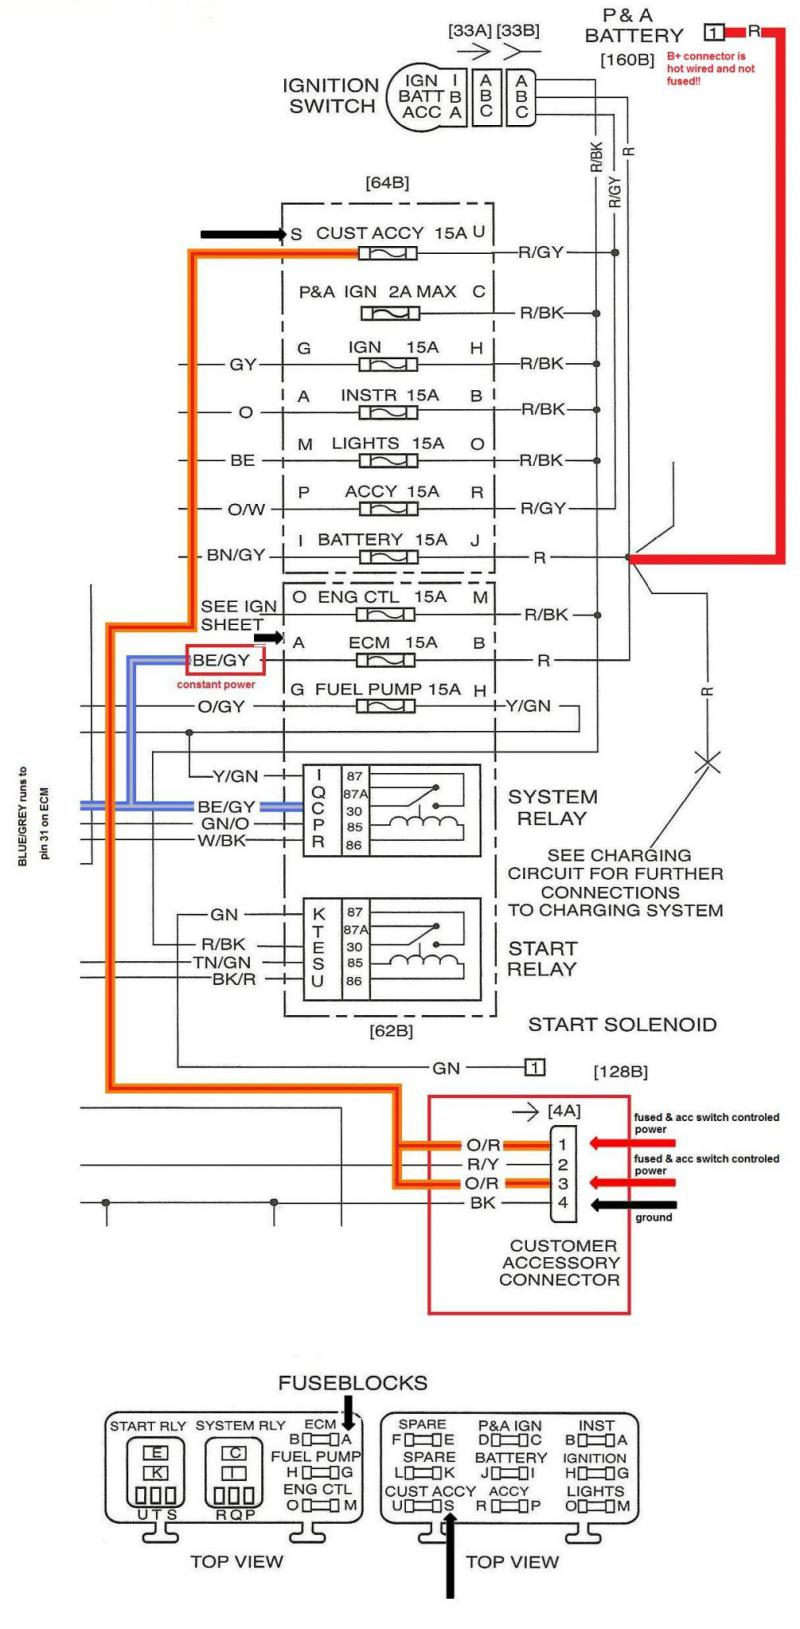 2006 Harley Wiring Diagram - Wiring Diagram Blog - Harley Davidson Wiring Diagram